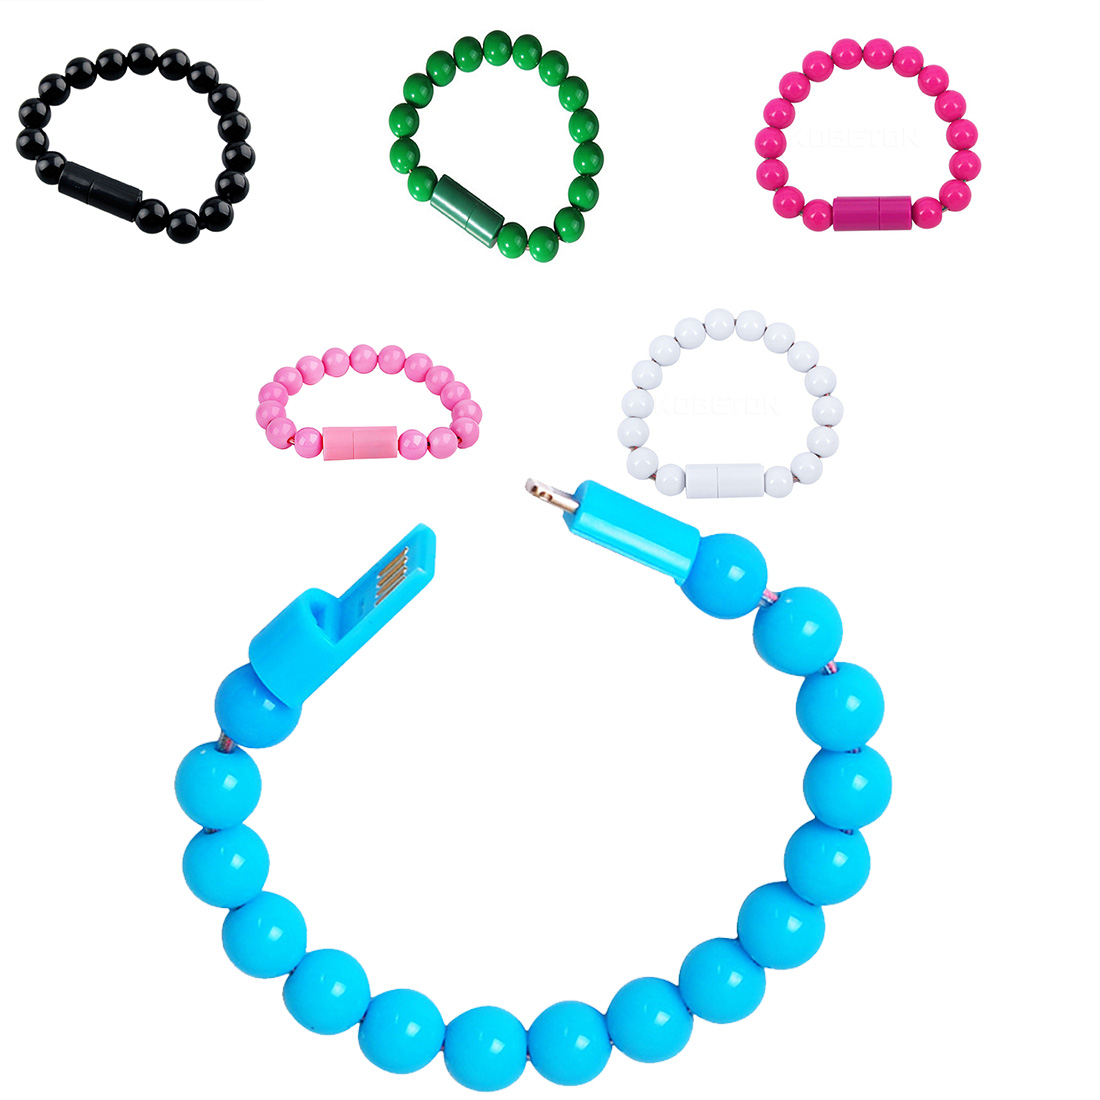 Micro USB Charging Cable Beads Bracelet